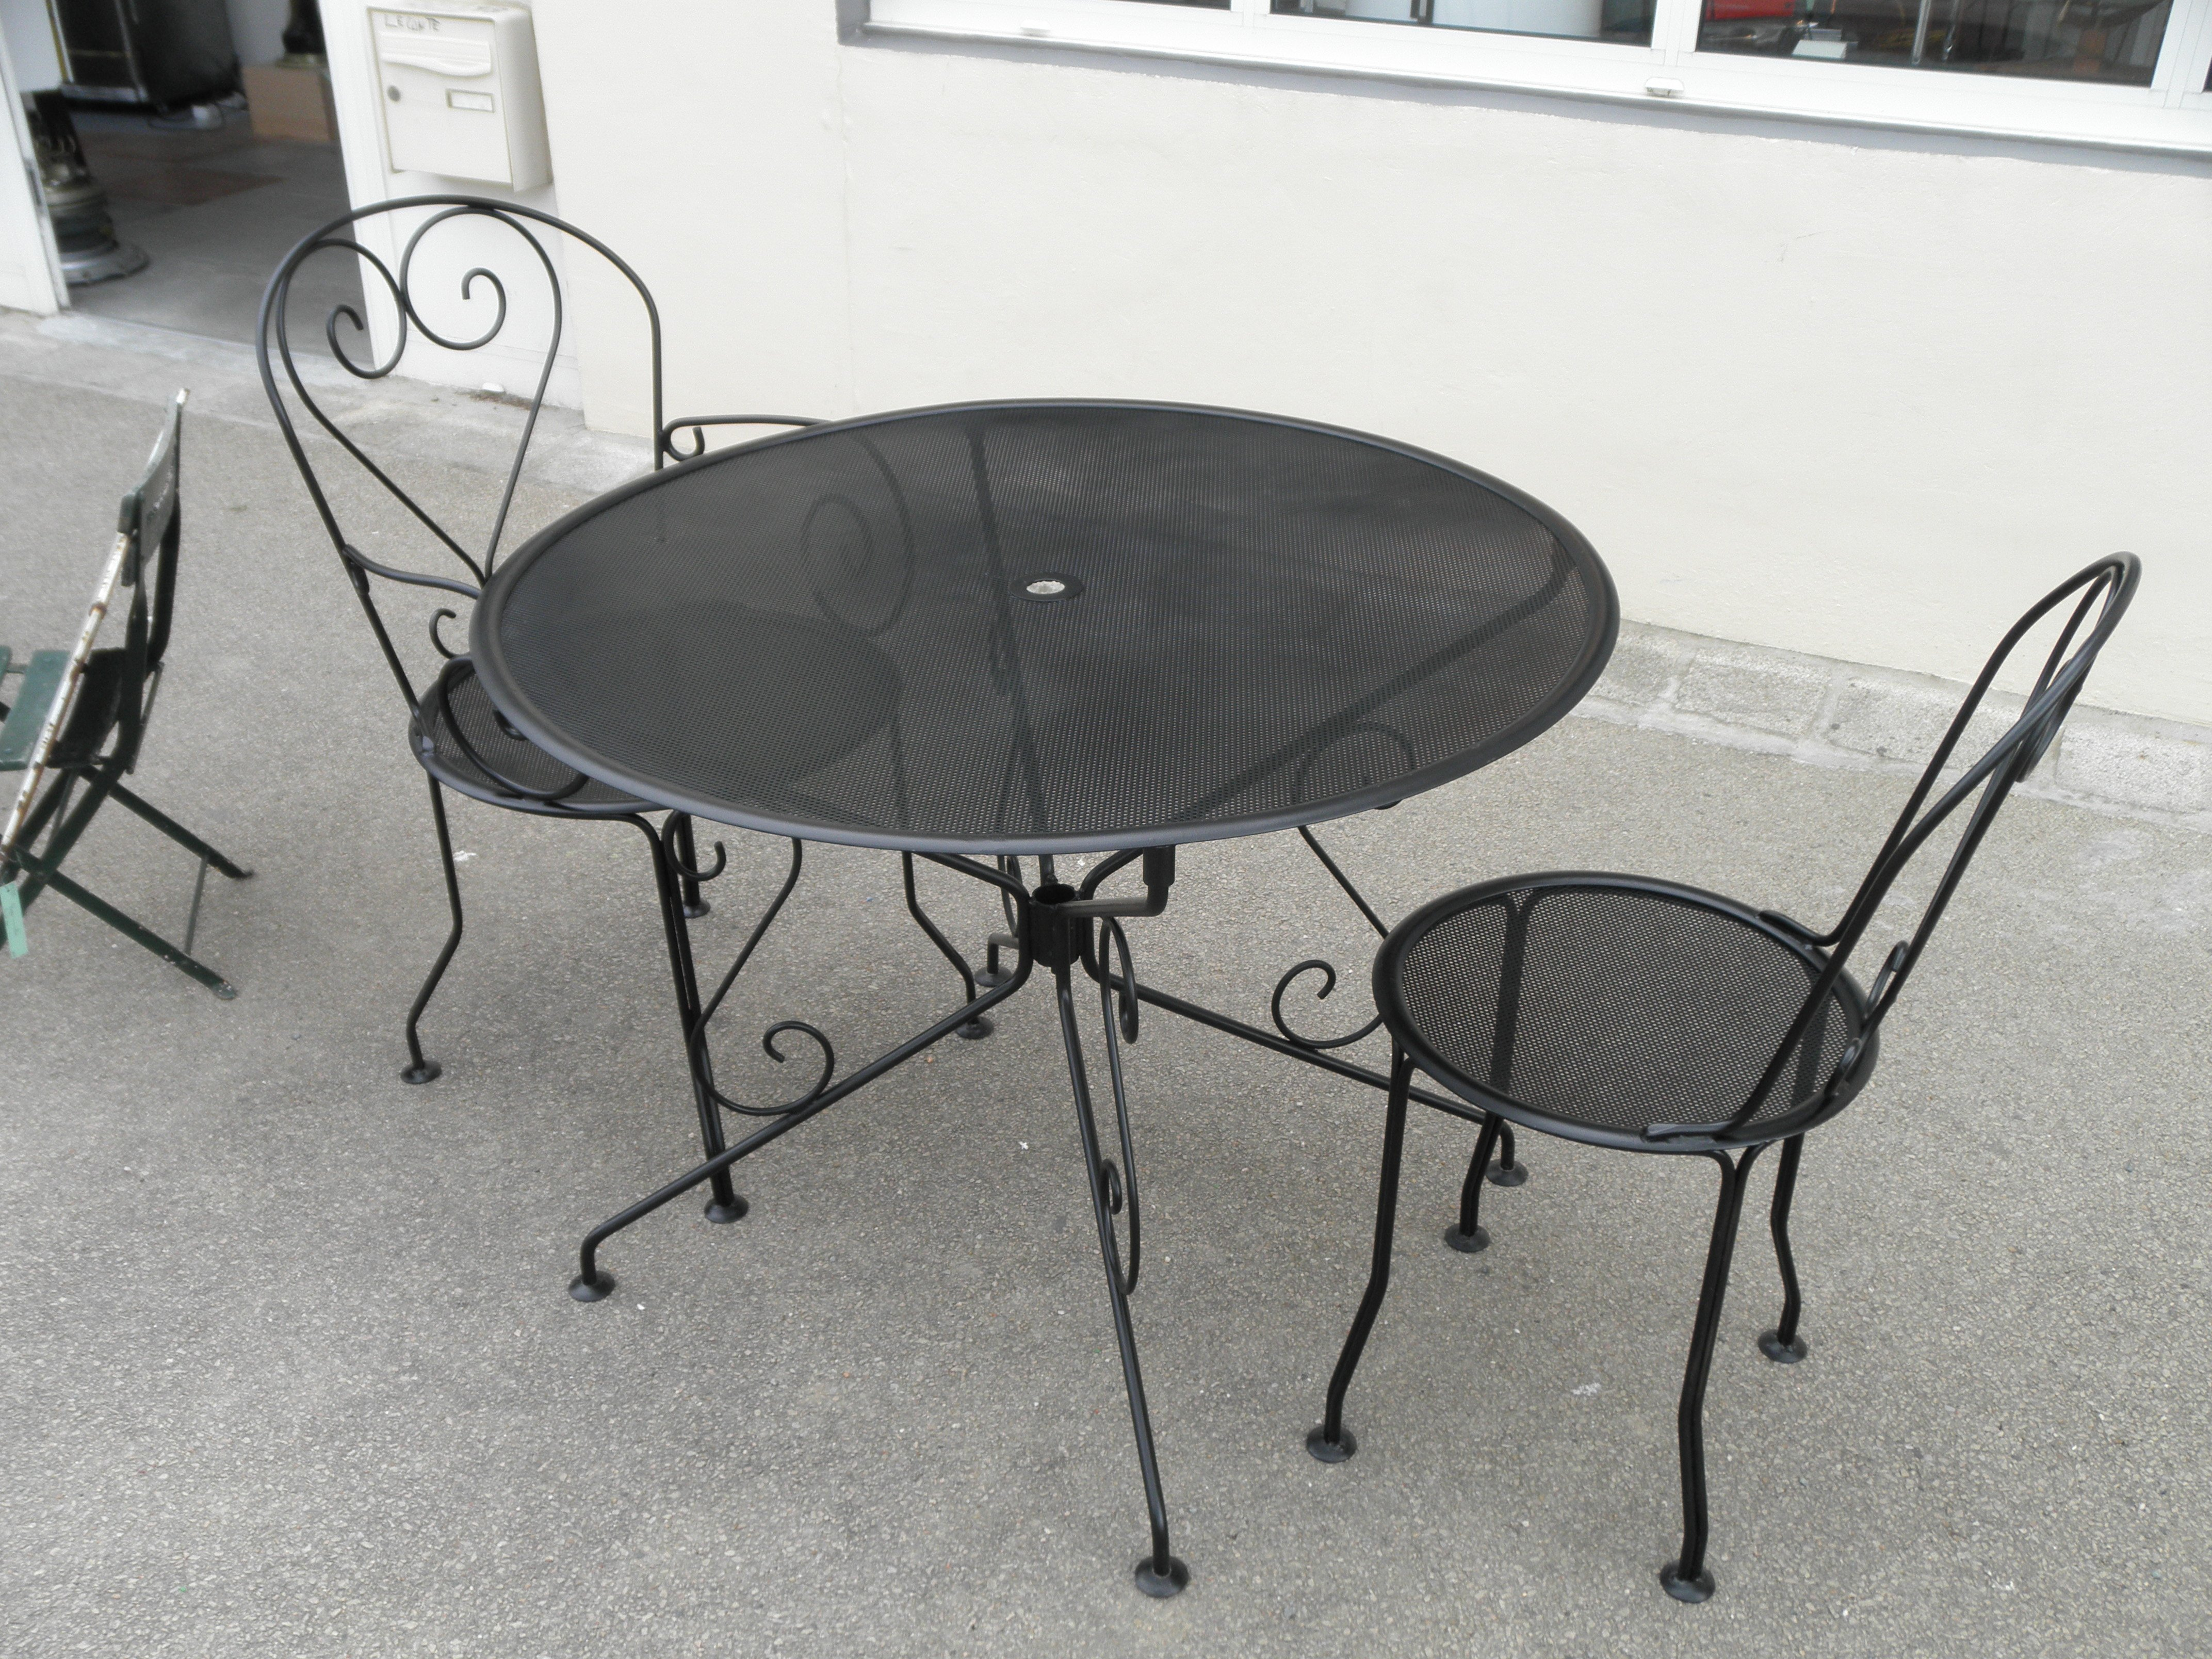 Salon de jardin table ronde fer forg achat salon de jardin table ronde fer - Table de jardin ronde en fer forge ...